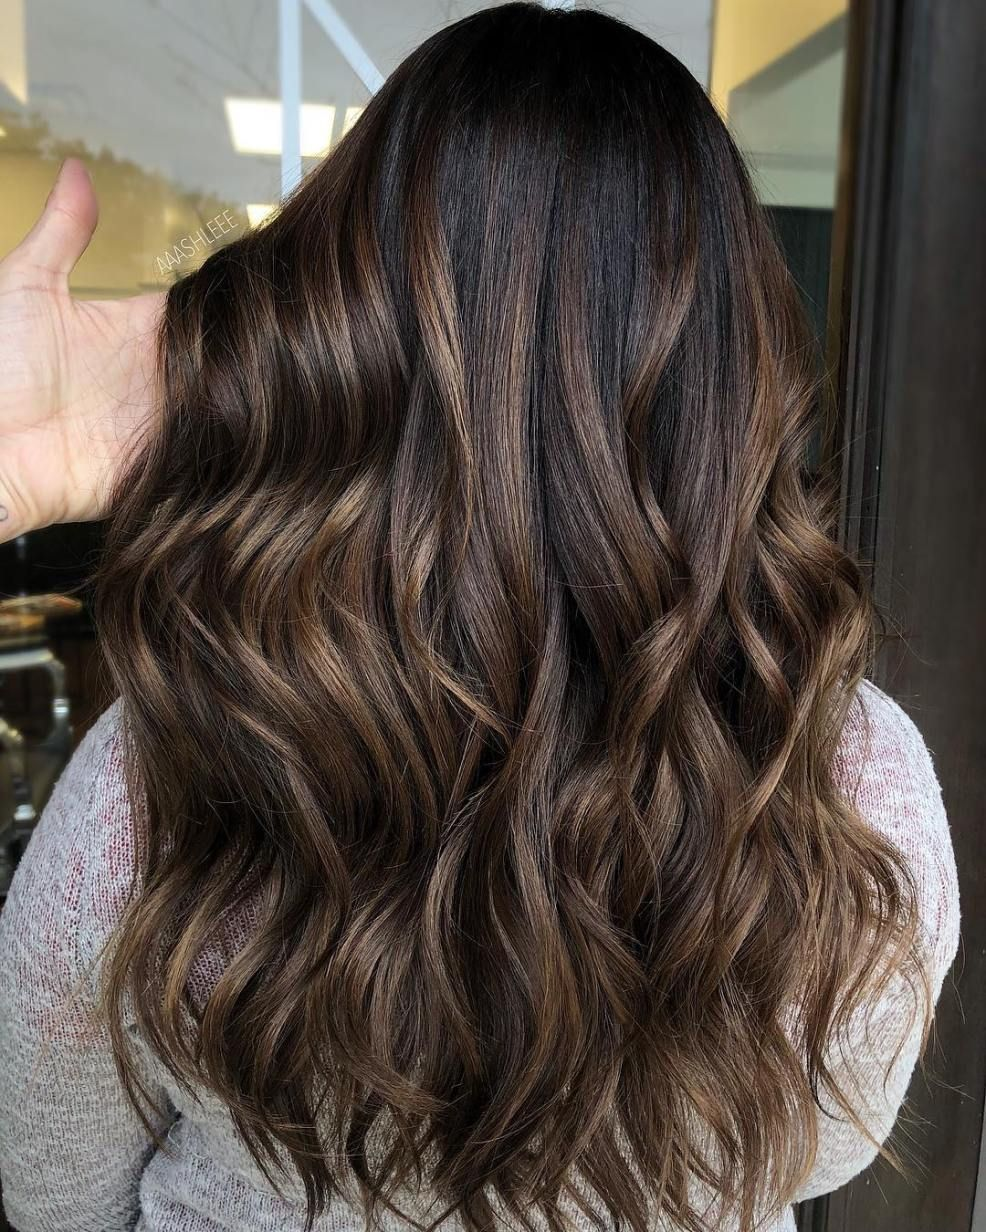 60 Hairstyles Featuring Dark Brown Hair With Highlights Hair Highlights Curly Hair Styles Naturally Curly Hair Styles